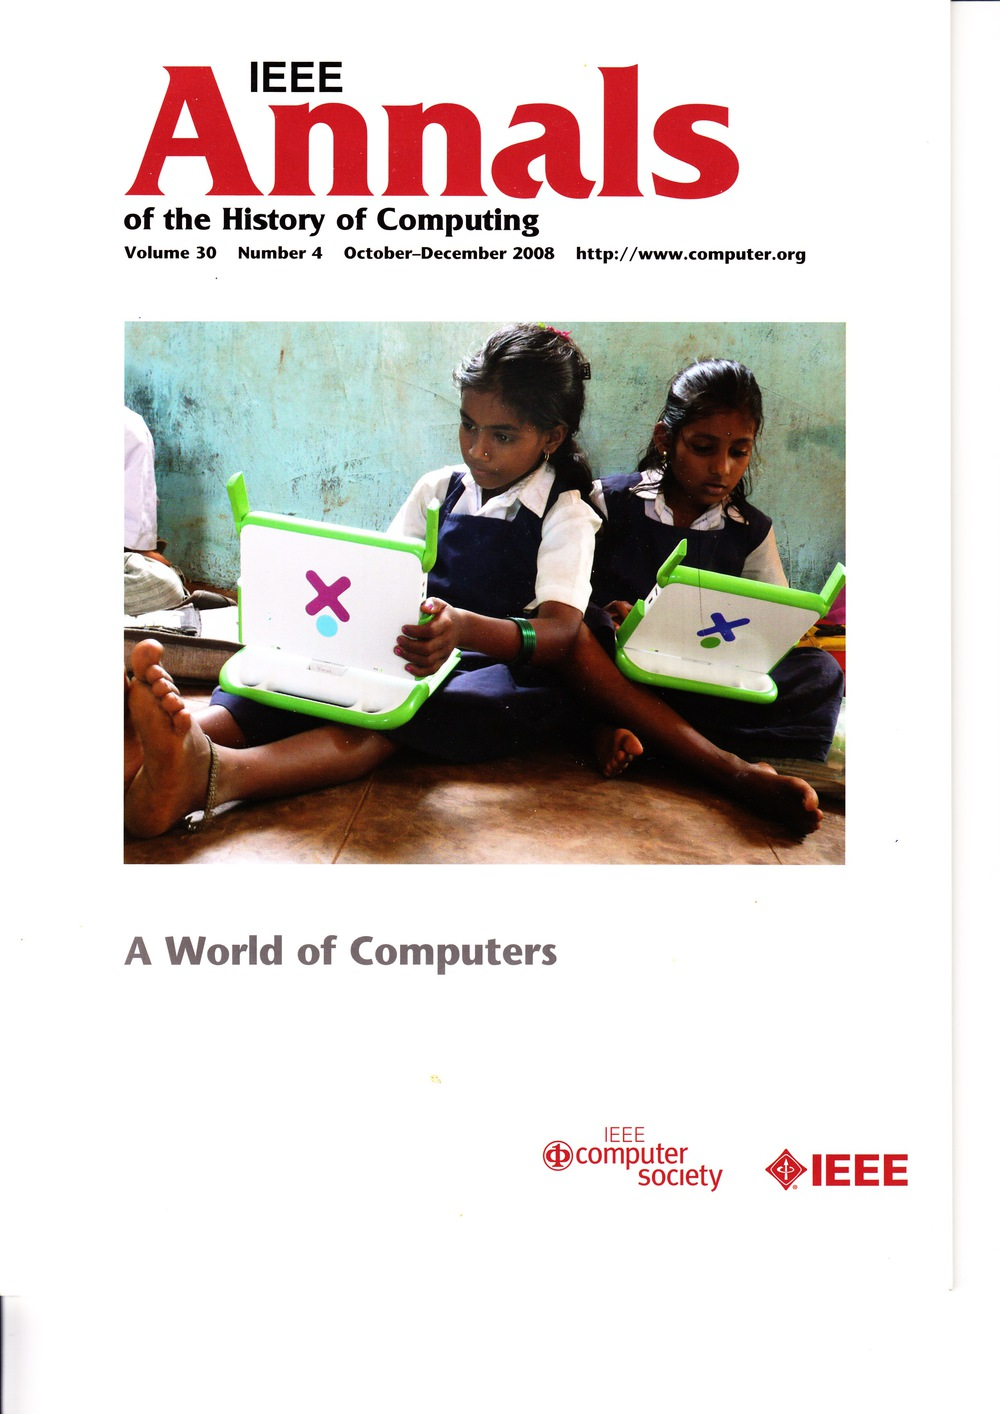 Scan of Document: IEEE Annals of the History of Computing - October-December 2008